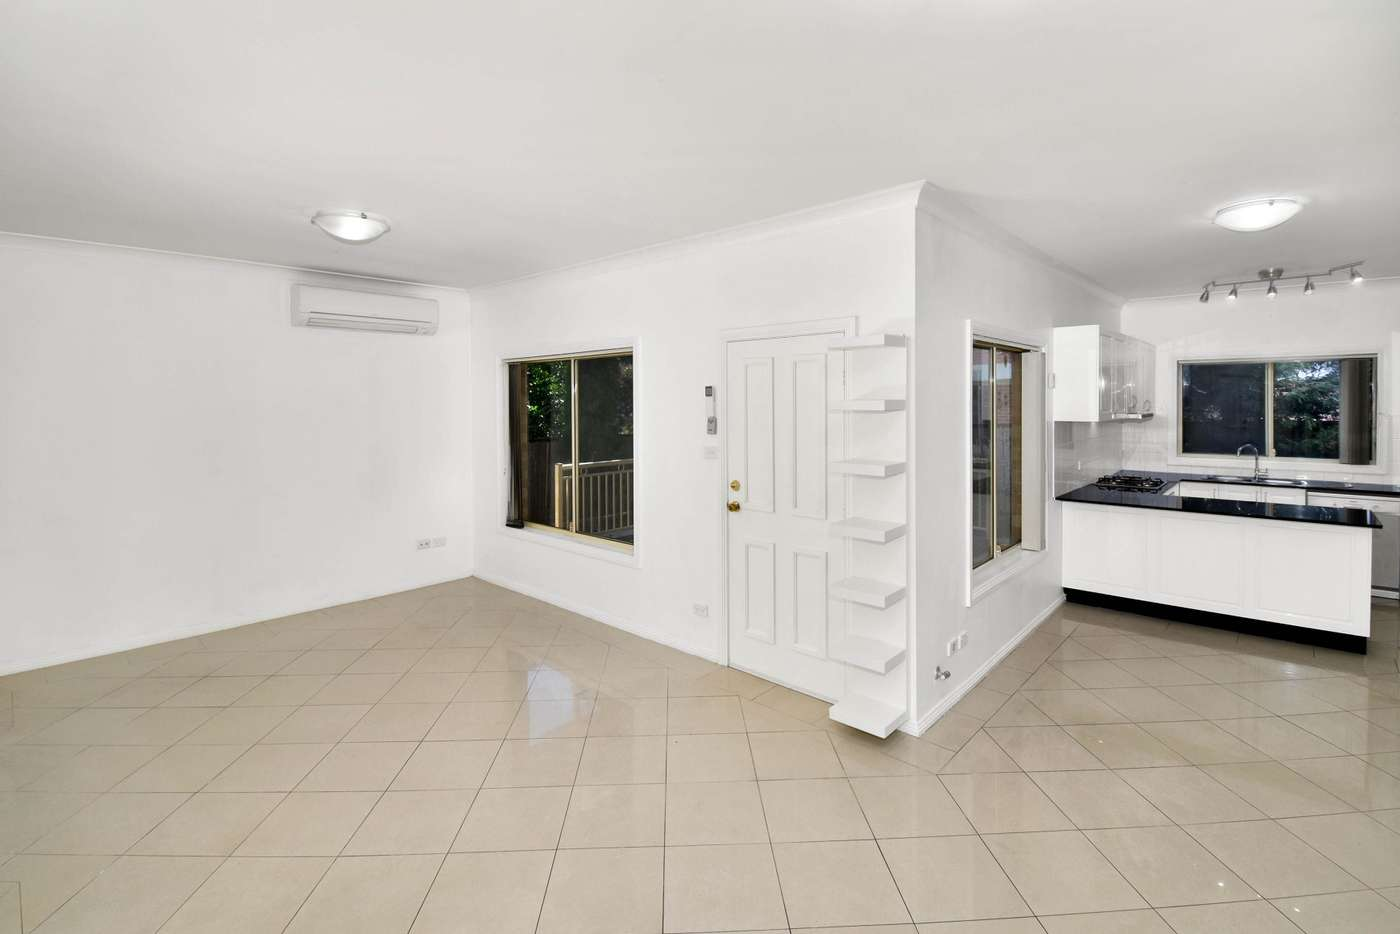 Fifth view of Homely townhouse listing, 7/7 O'Brien Street, Mount Druitt NSW 2770